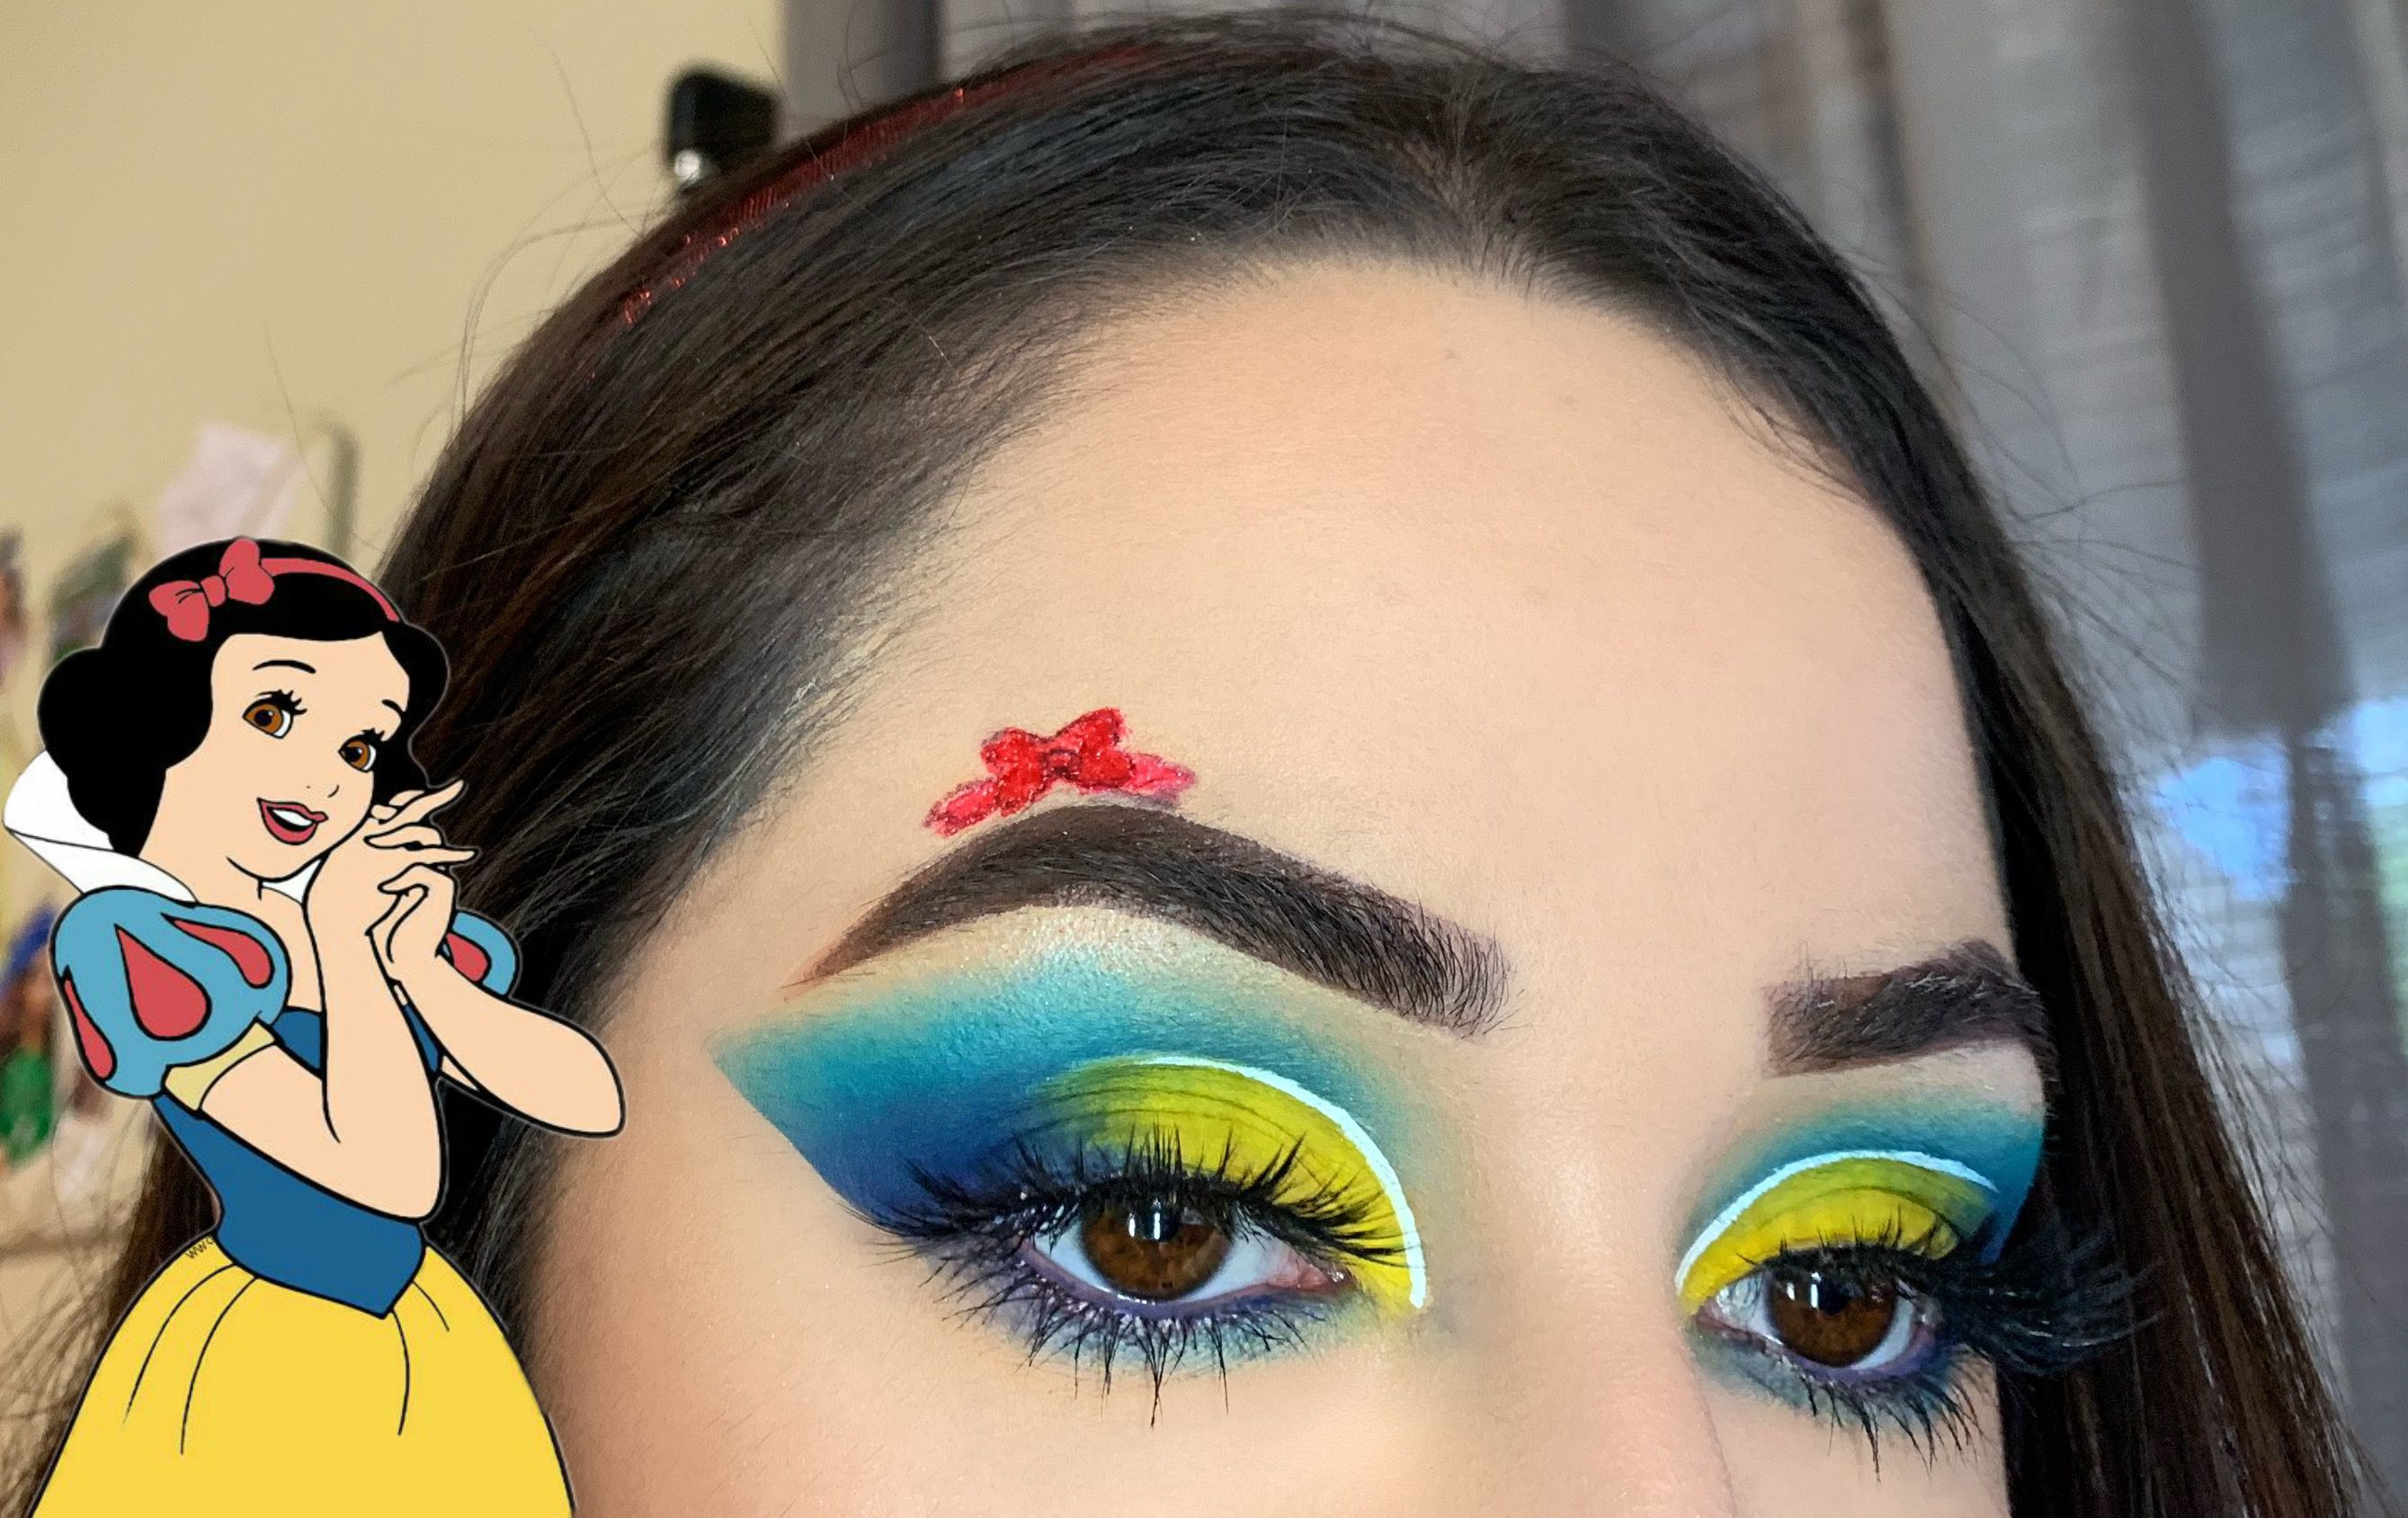 Used the James Charles Palette by Morphe! eyemakeup